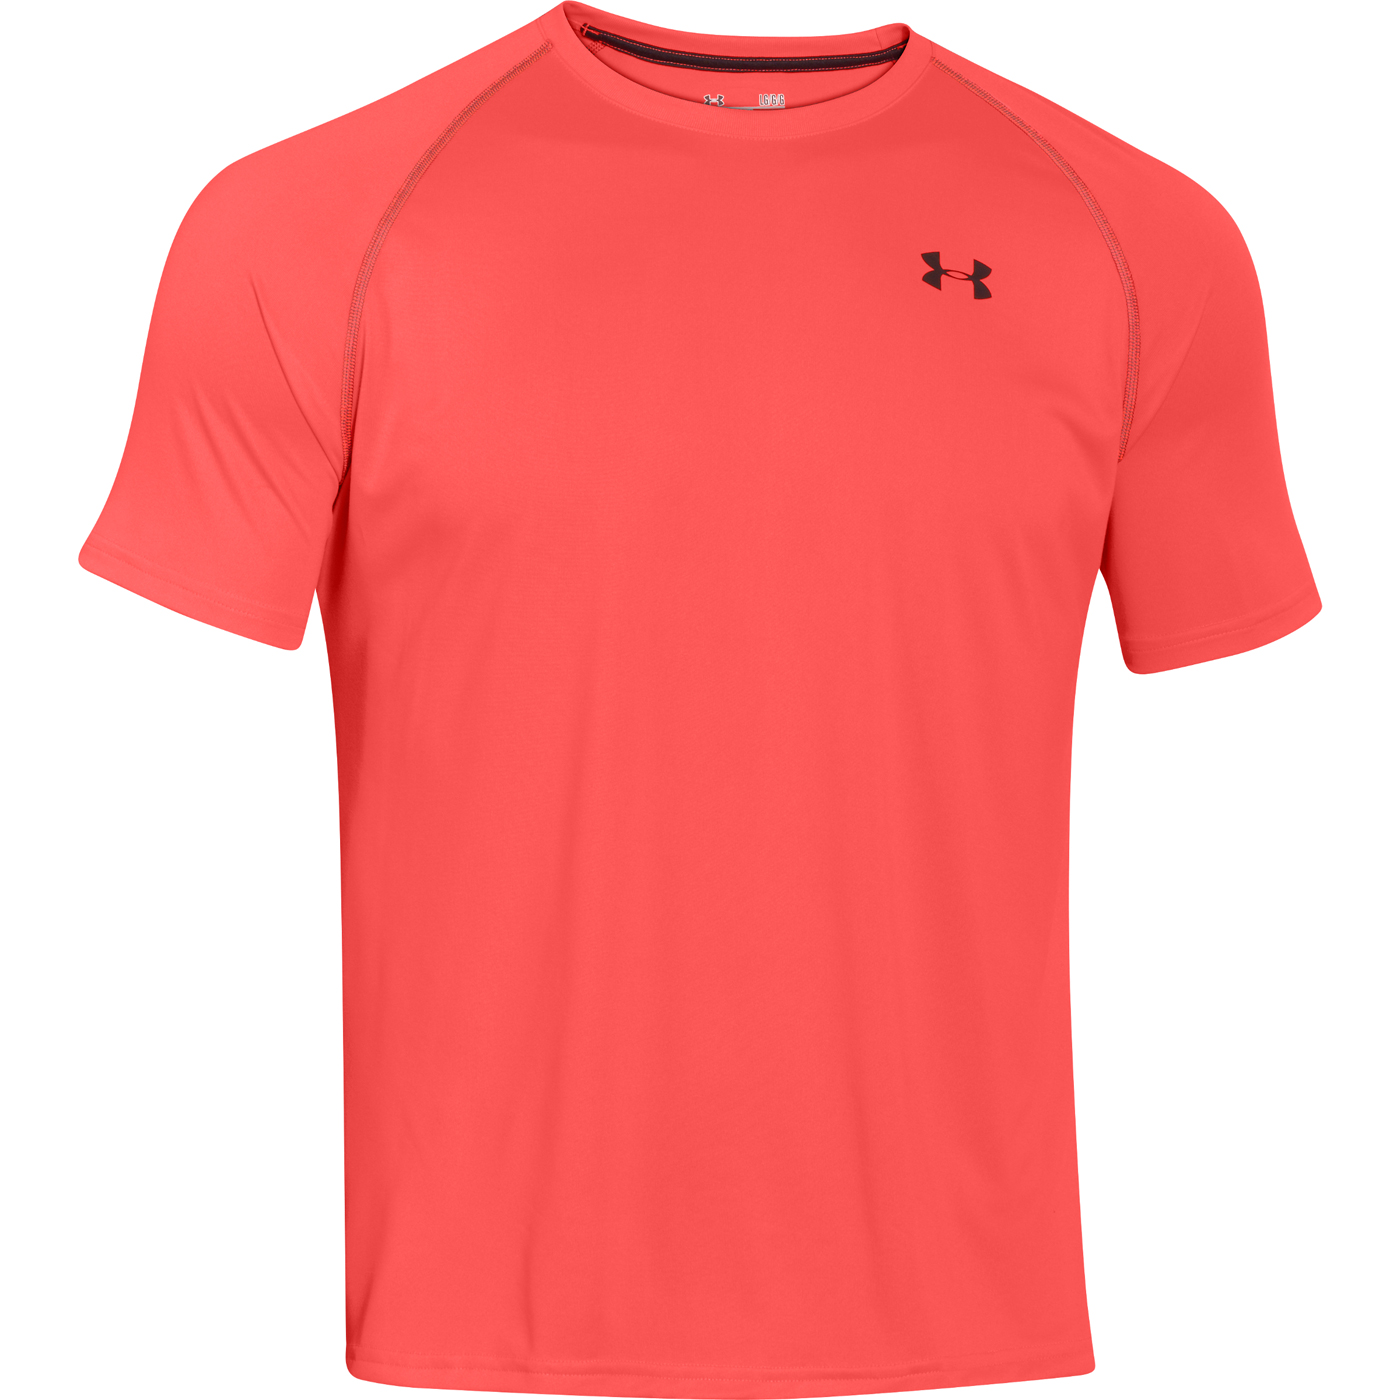 under armour mens heatgear new tech shortsleeve tee shirt. Black Bedroom Furniture Sets. Home Design Ideas